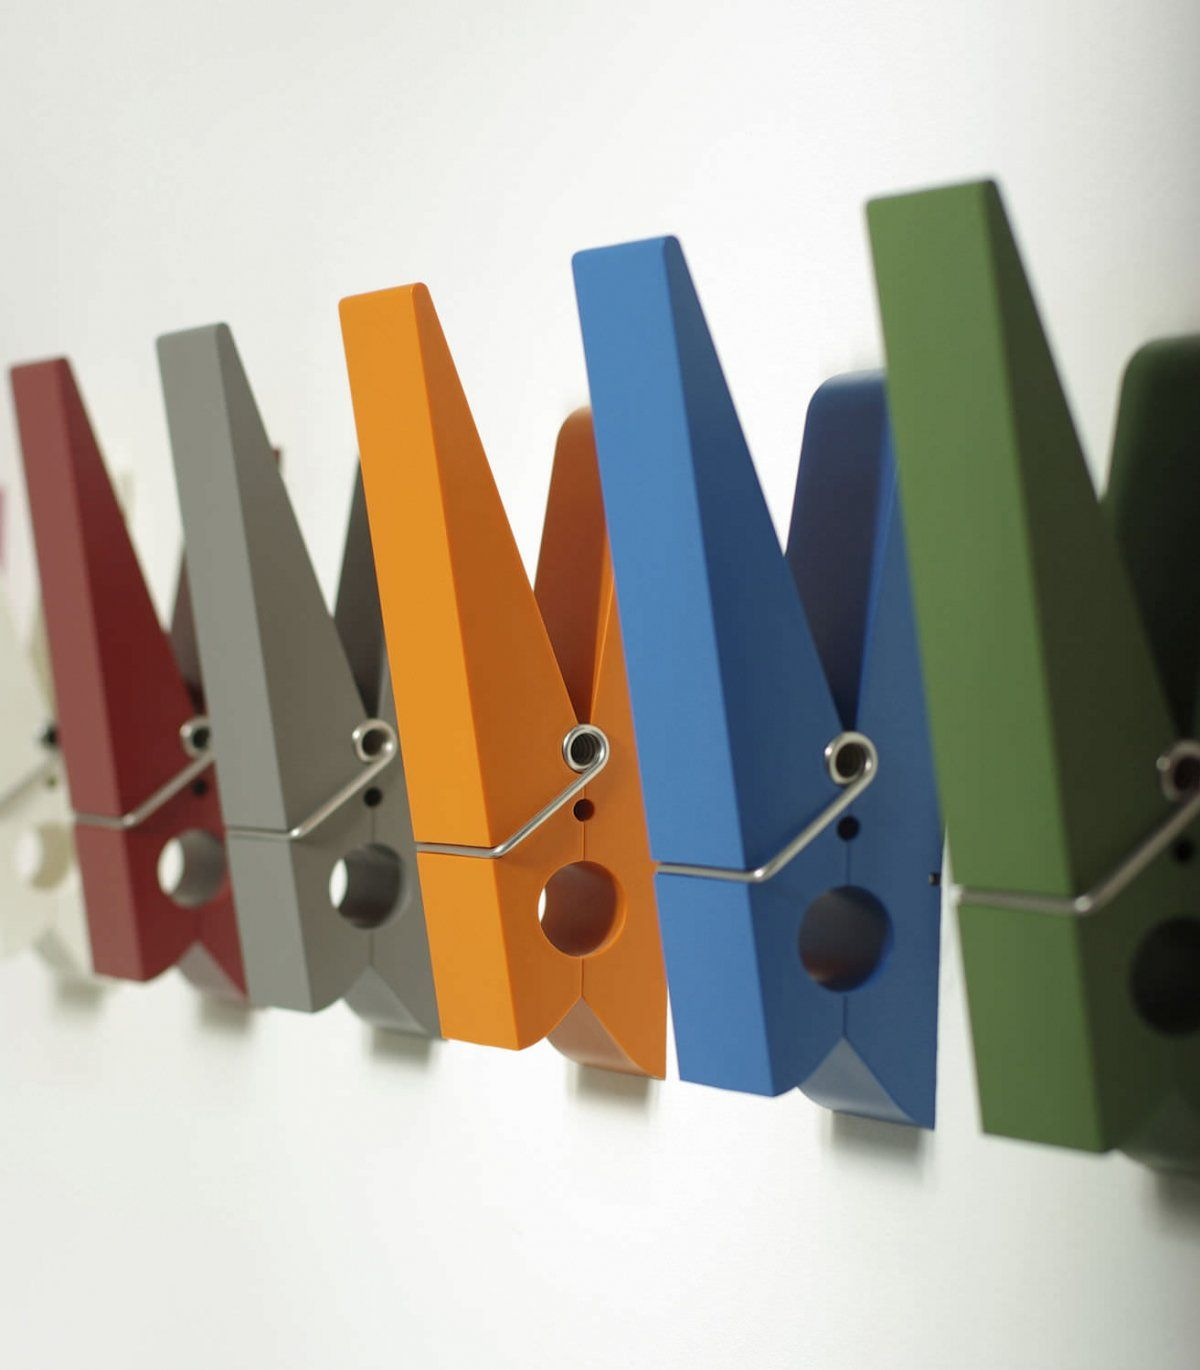 Unusual Coat Hooks Unique Wall Mounted Coat Racks Funky Coat Racks